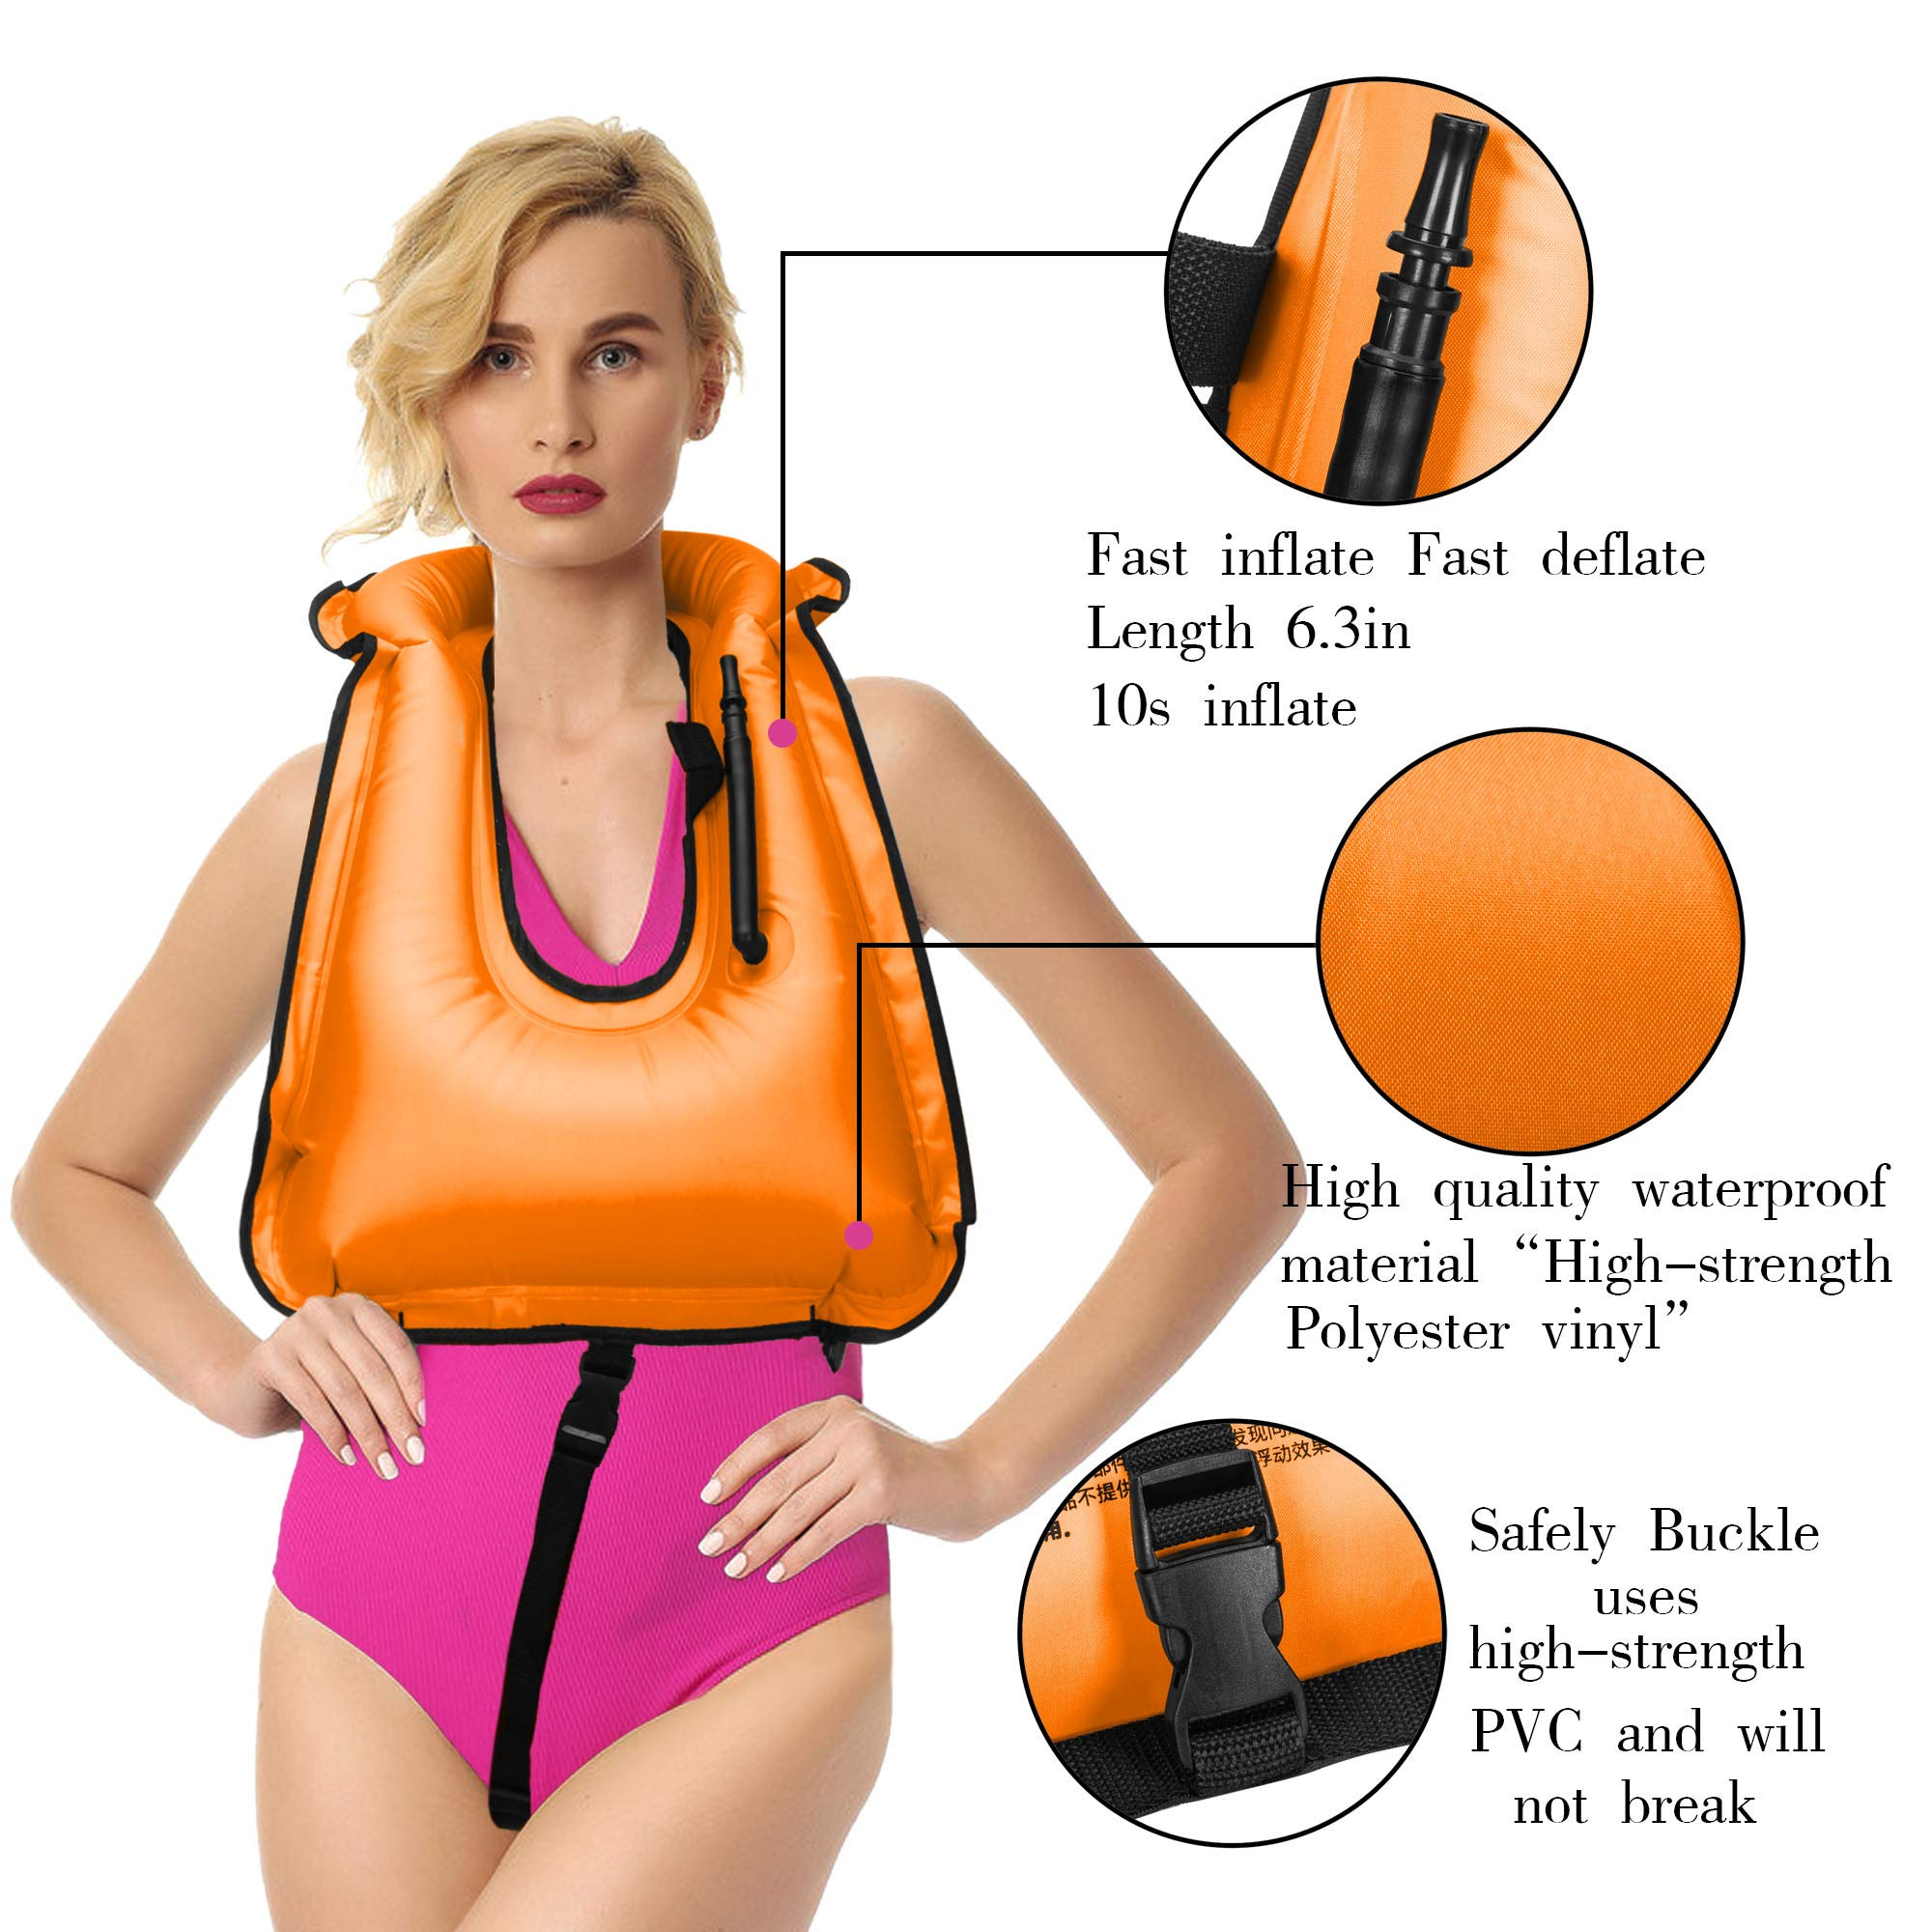 YAPA Inflatable Snorkel Vest Adult Life Jackets Vests Free Diving Swimming Safety Load Up to 220 Ibs